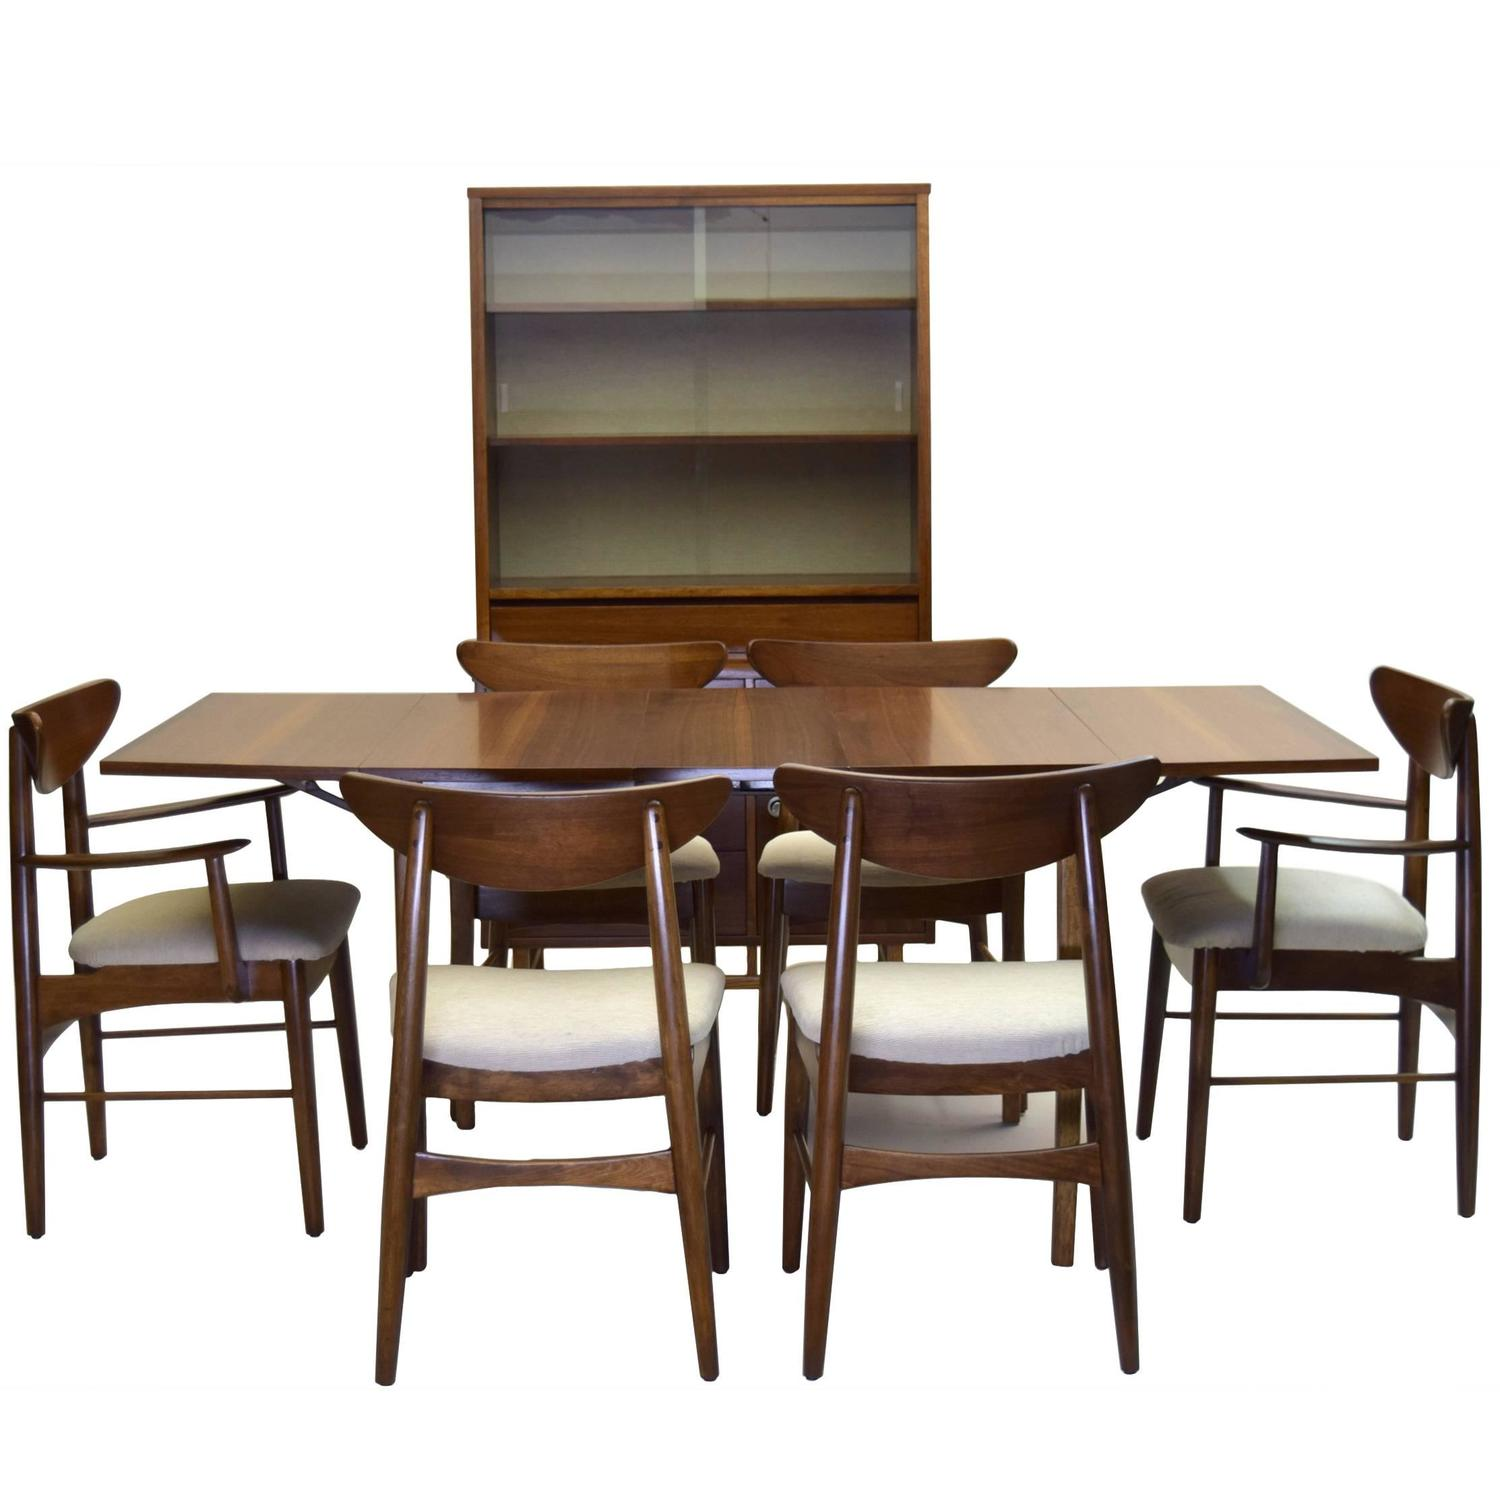 Nine Piece Dining Suite Includes China Cabinet  Stanley Furniture Finnline  at 1stdibs. Nine Piece Dining Suite Includes China Cabinet  Stanley Furniture